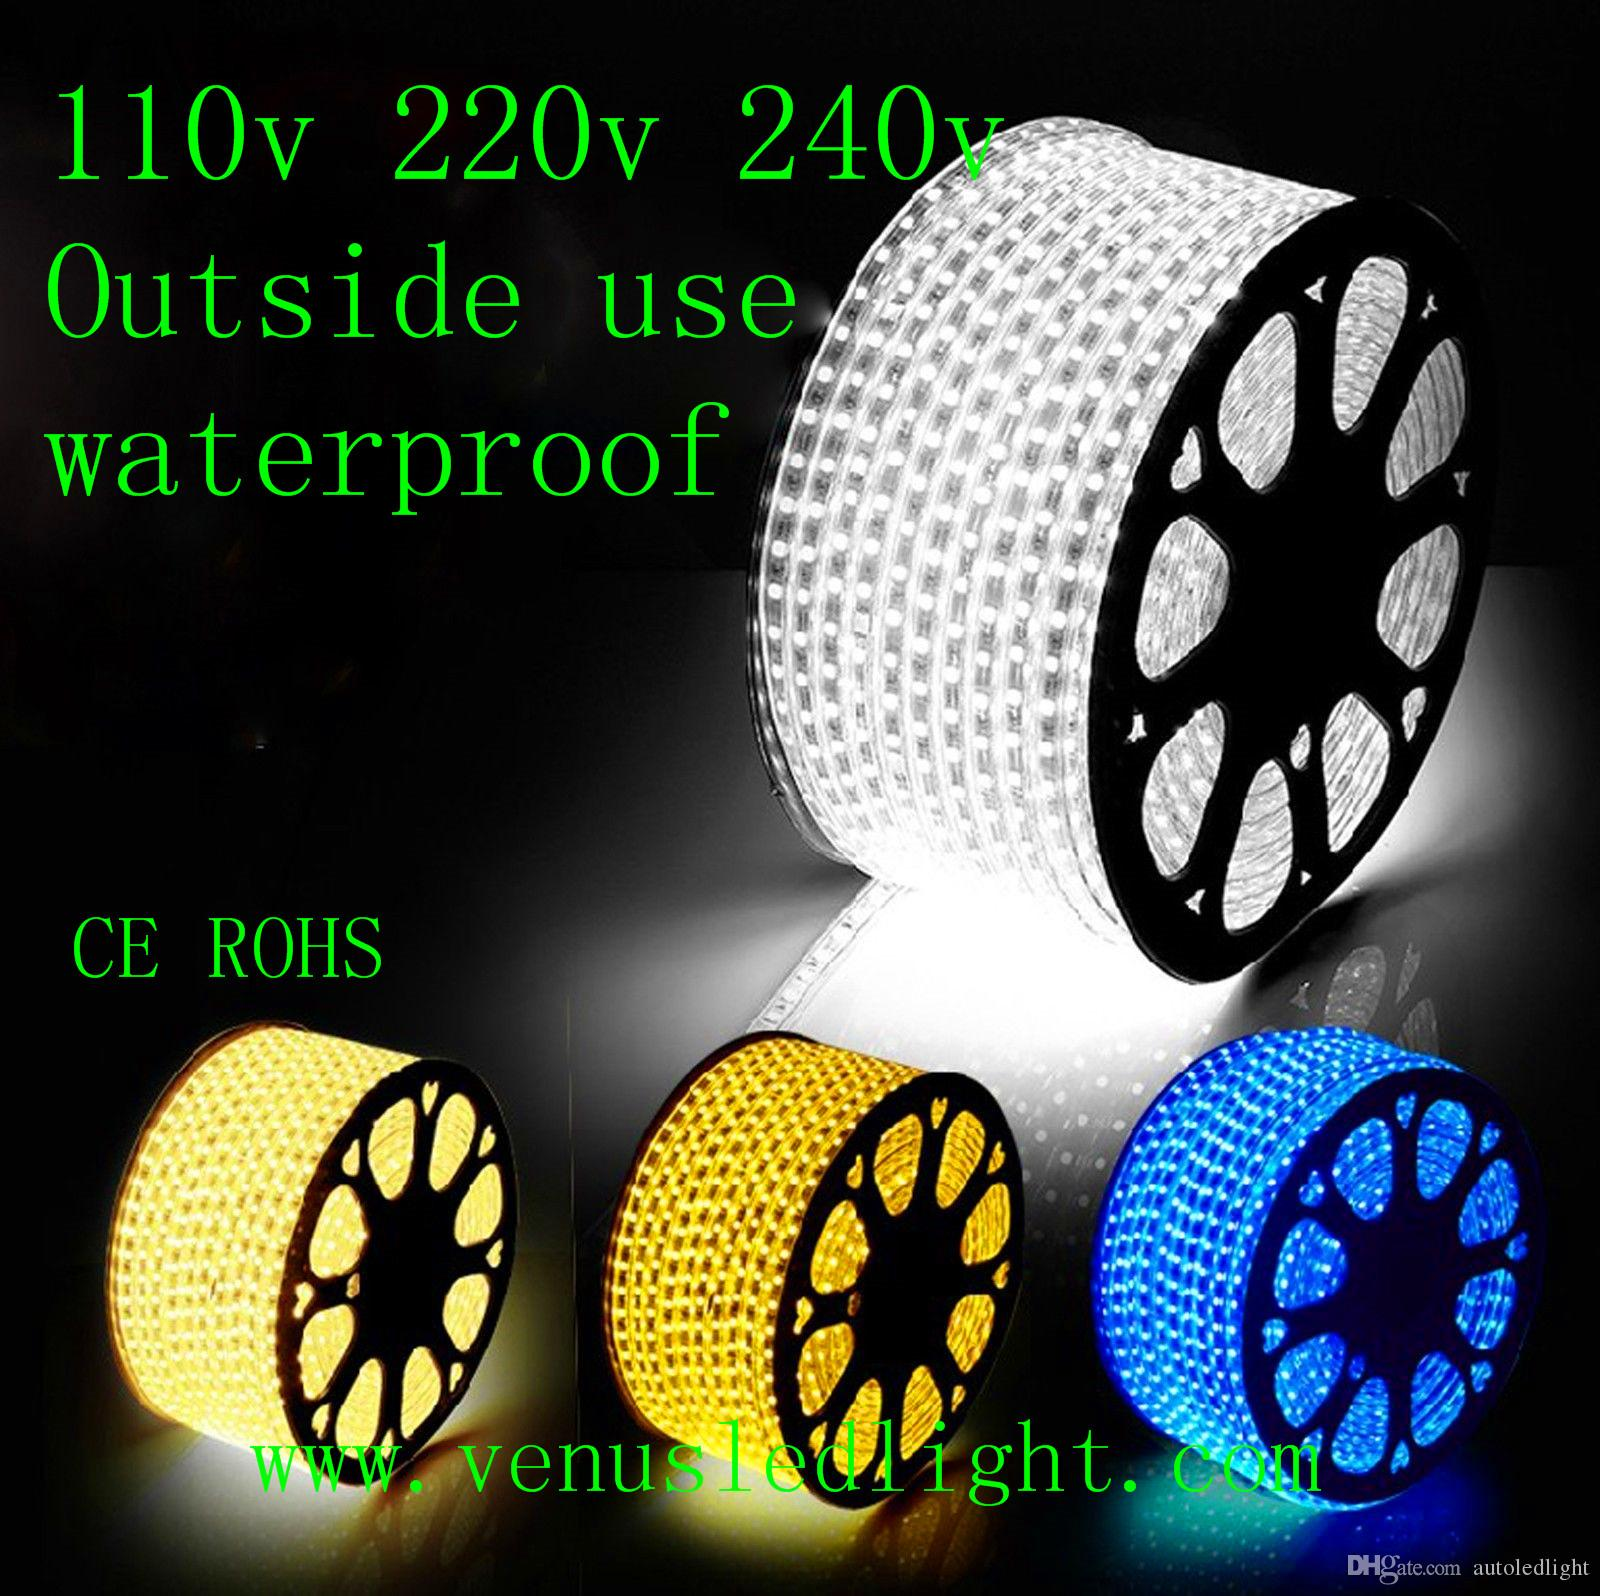 100m led strip light 60led flexible 110v220v waterproof smd 3528 100m led strip light 60led flexible 110v220v waterproof smd 3528 5050 chiristmas led rope light outdoor led light xmas decorating car led light strips dmx aloadofball Gallery